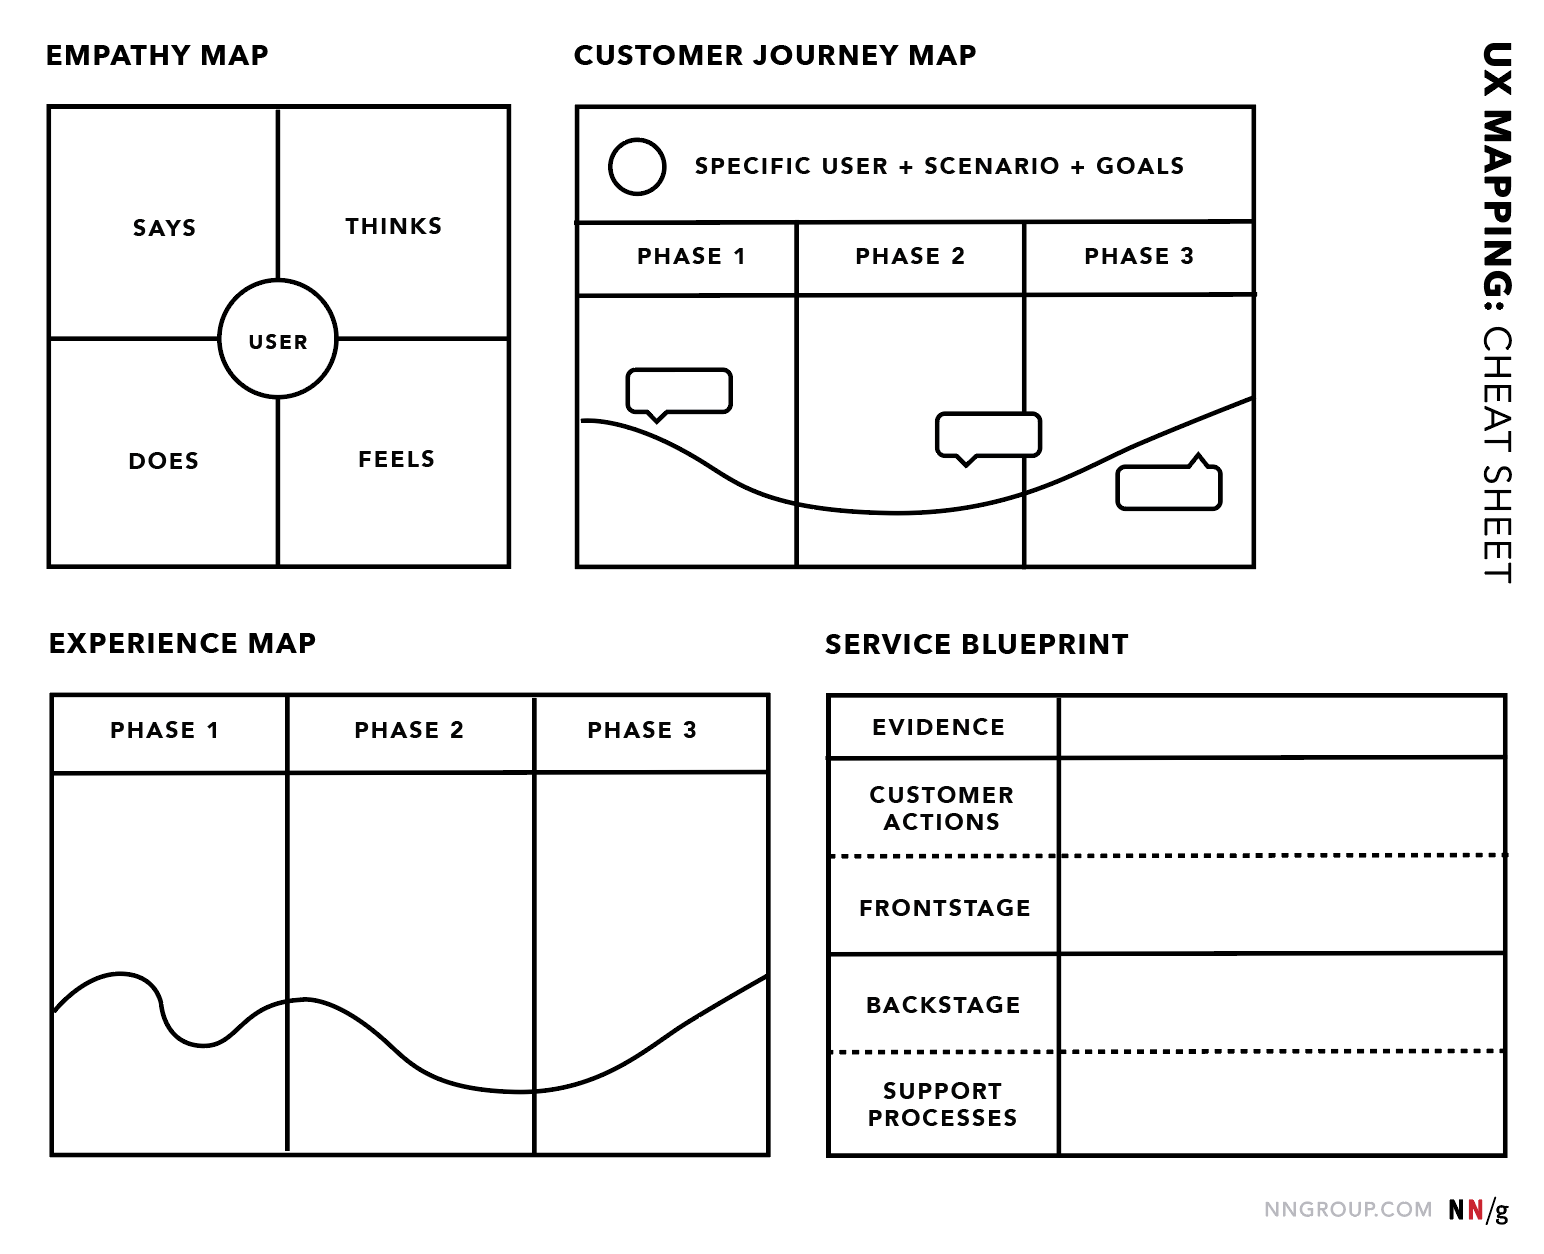 UX Mapping Methods Compared: A Cheat Sheet on